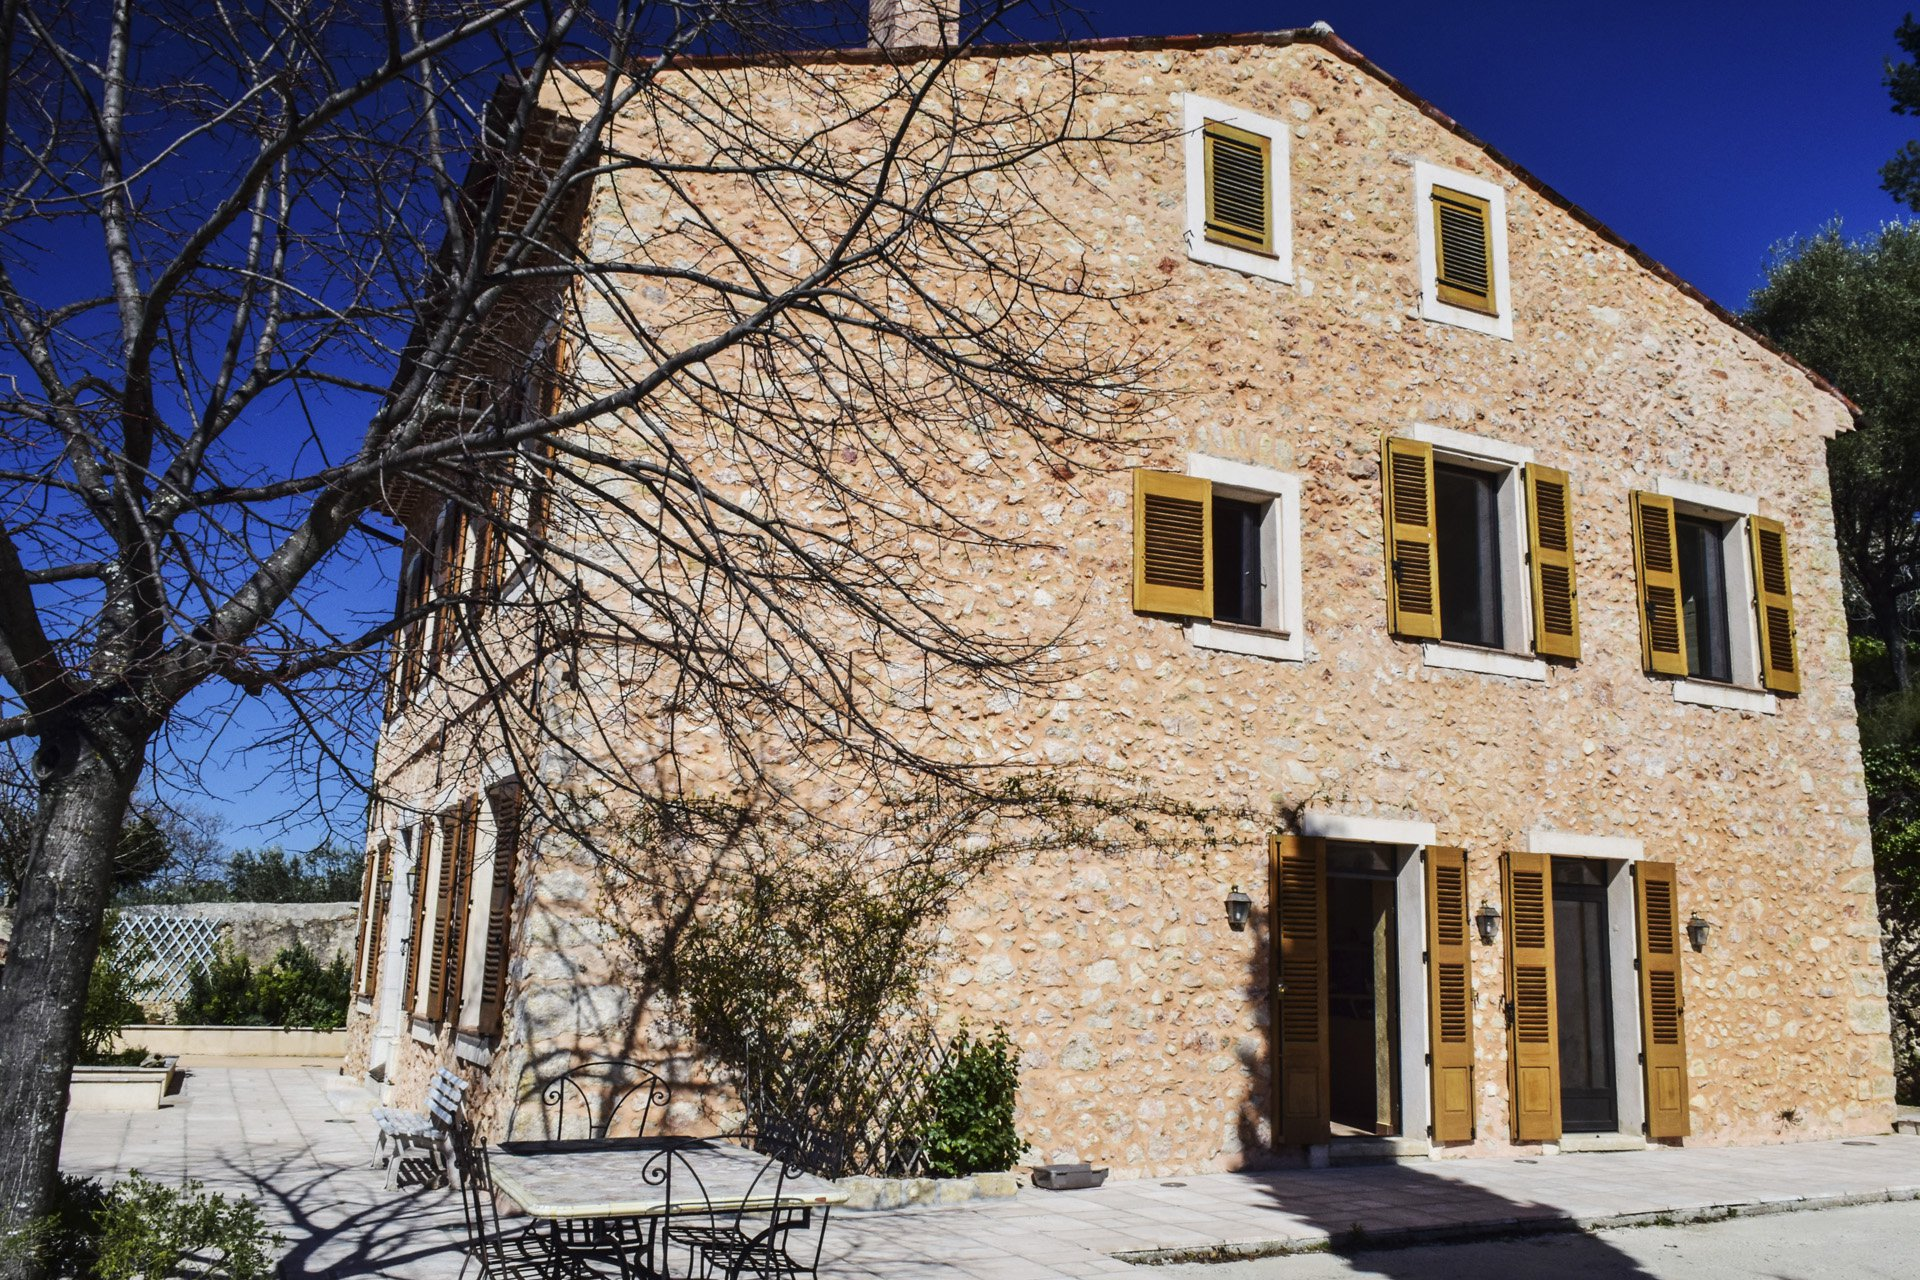 East façade 19th century mansion completely renovated with internal lift, Aups, Var, Verdon, Provence